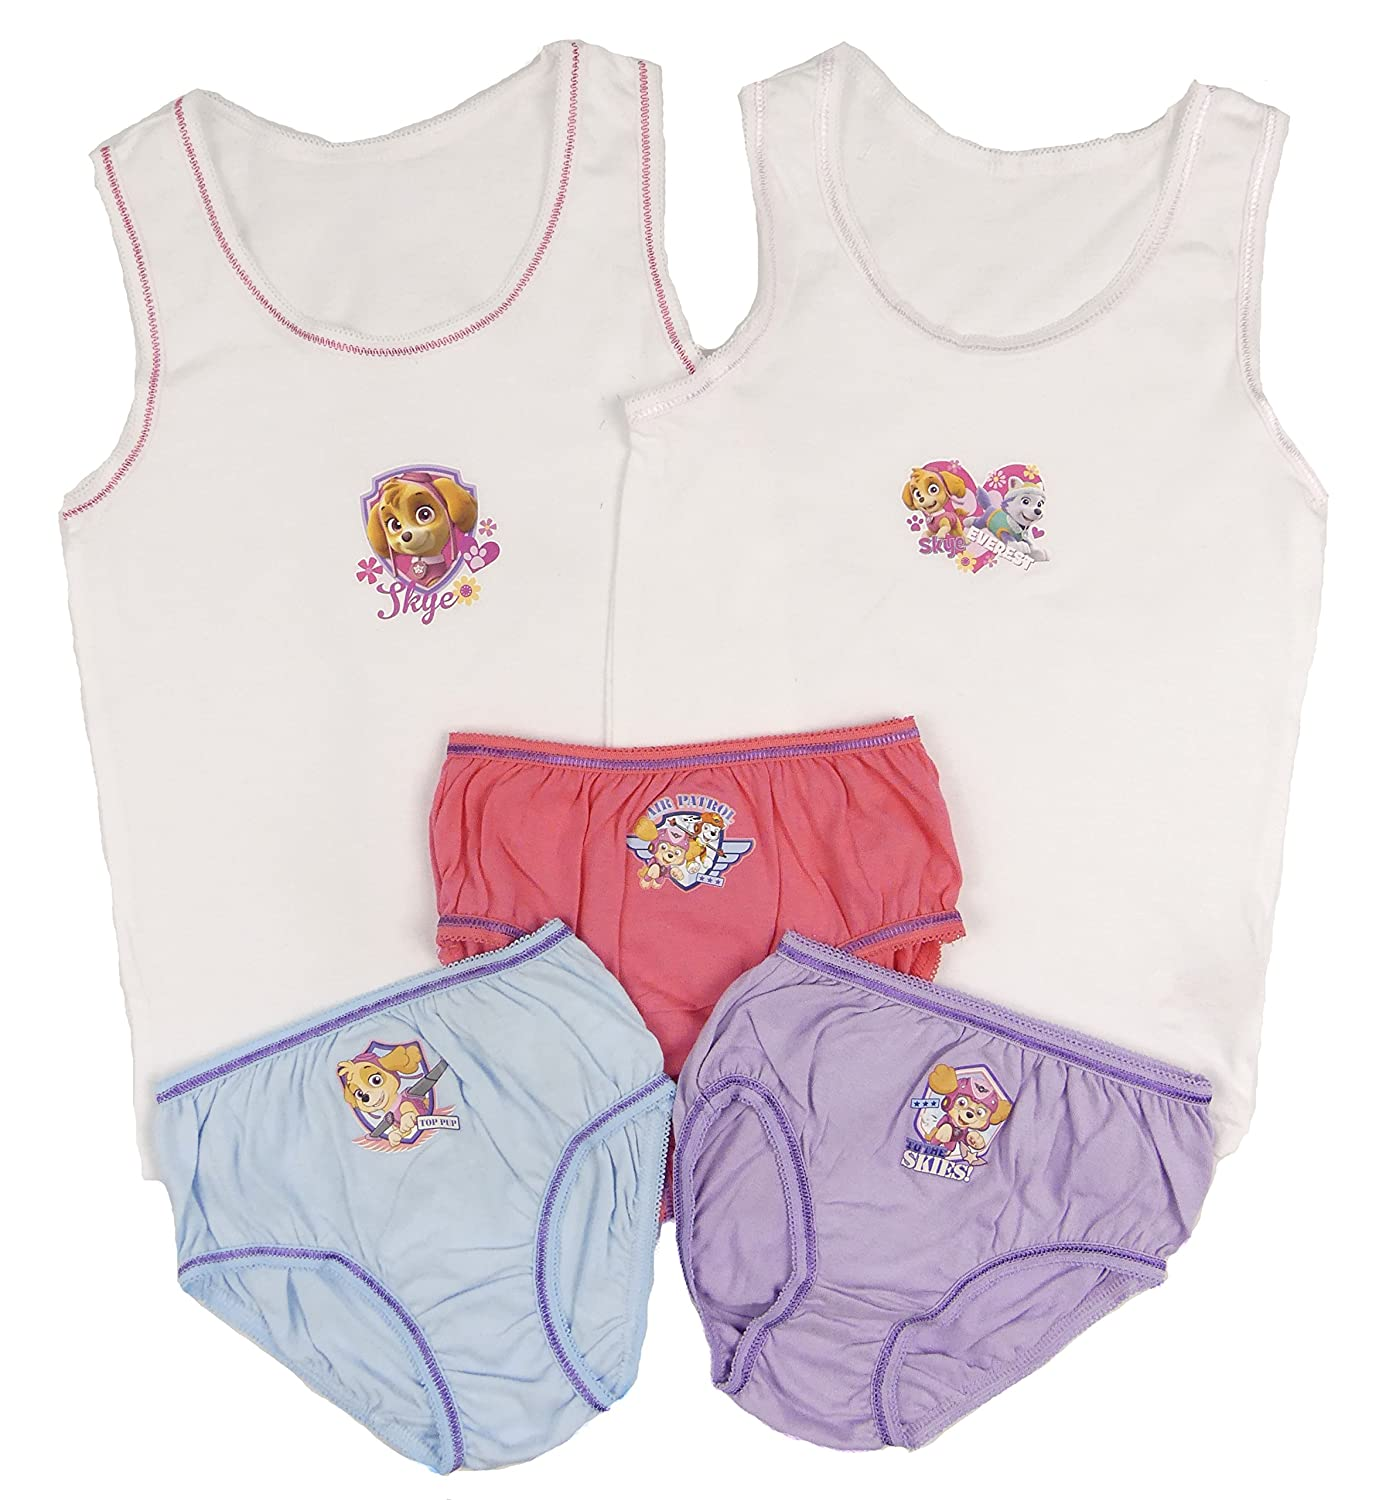 Paw Patrol Girls Vests and Knickers Set Sizes 18-24m 2-3y 3-4y 4-5y